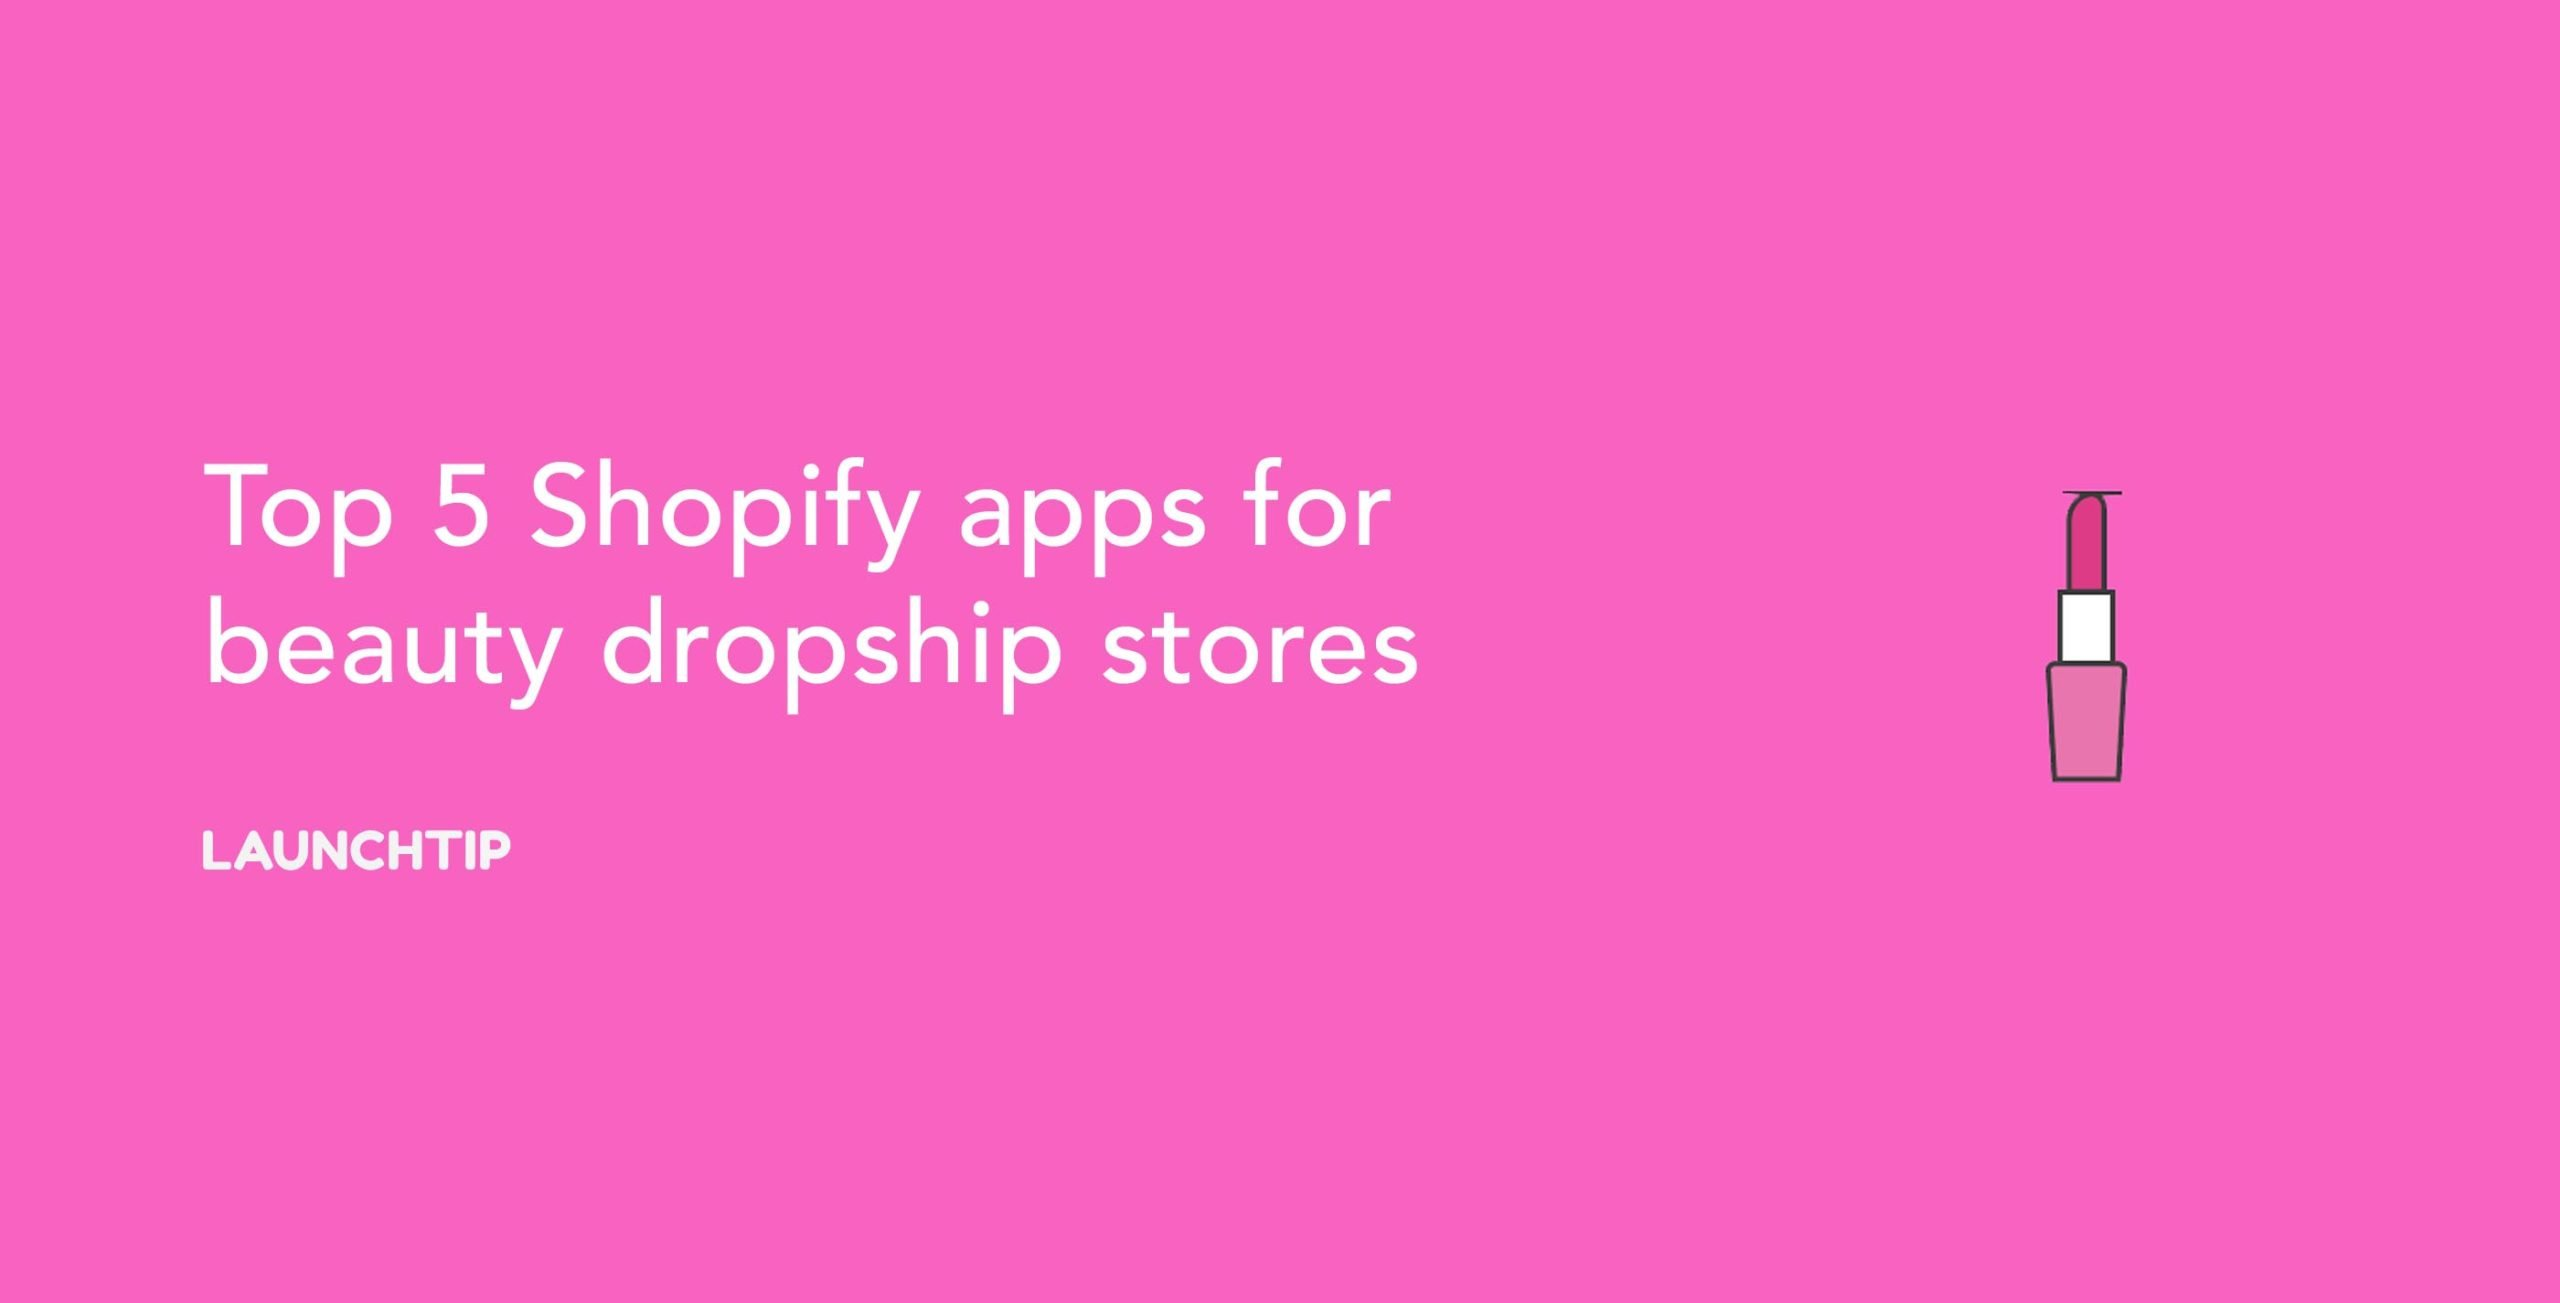 Top 6 Shopify apps for beauty dropship stores